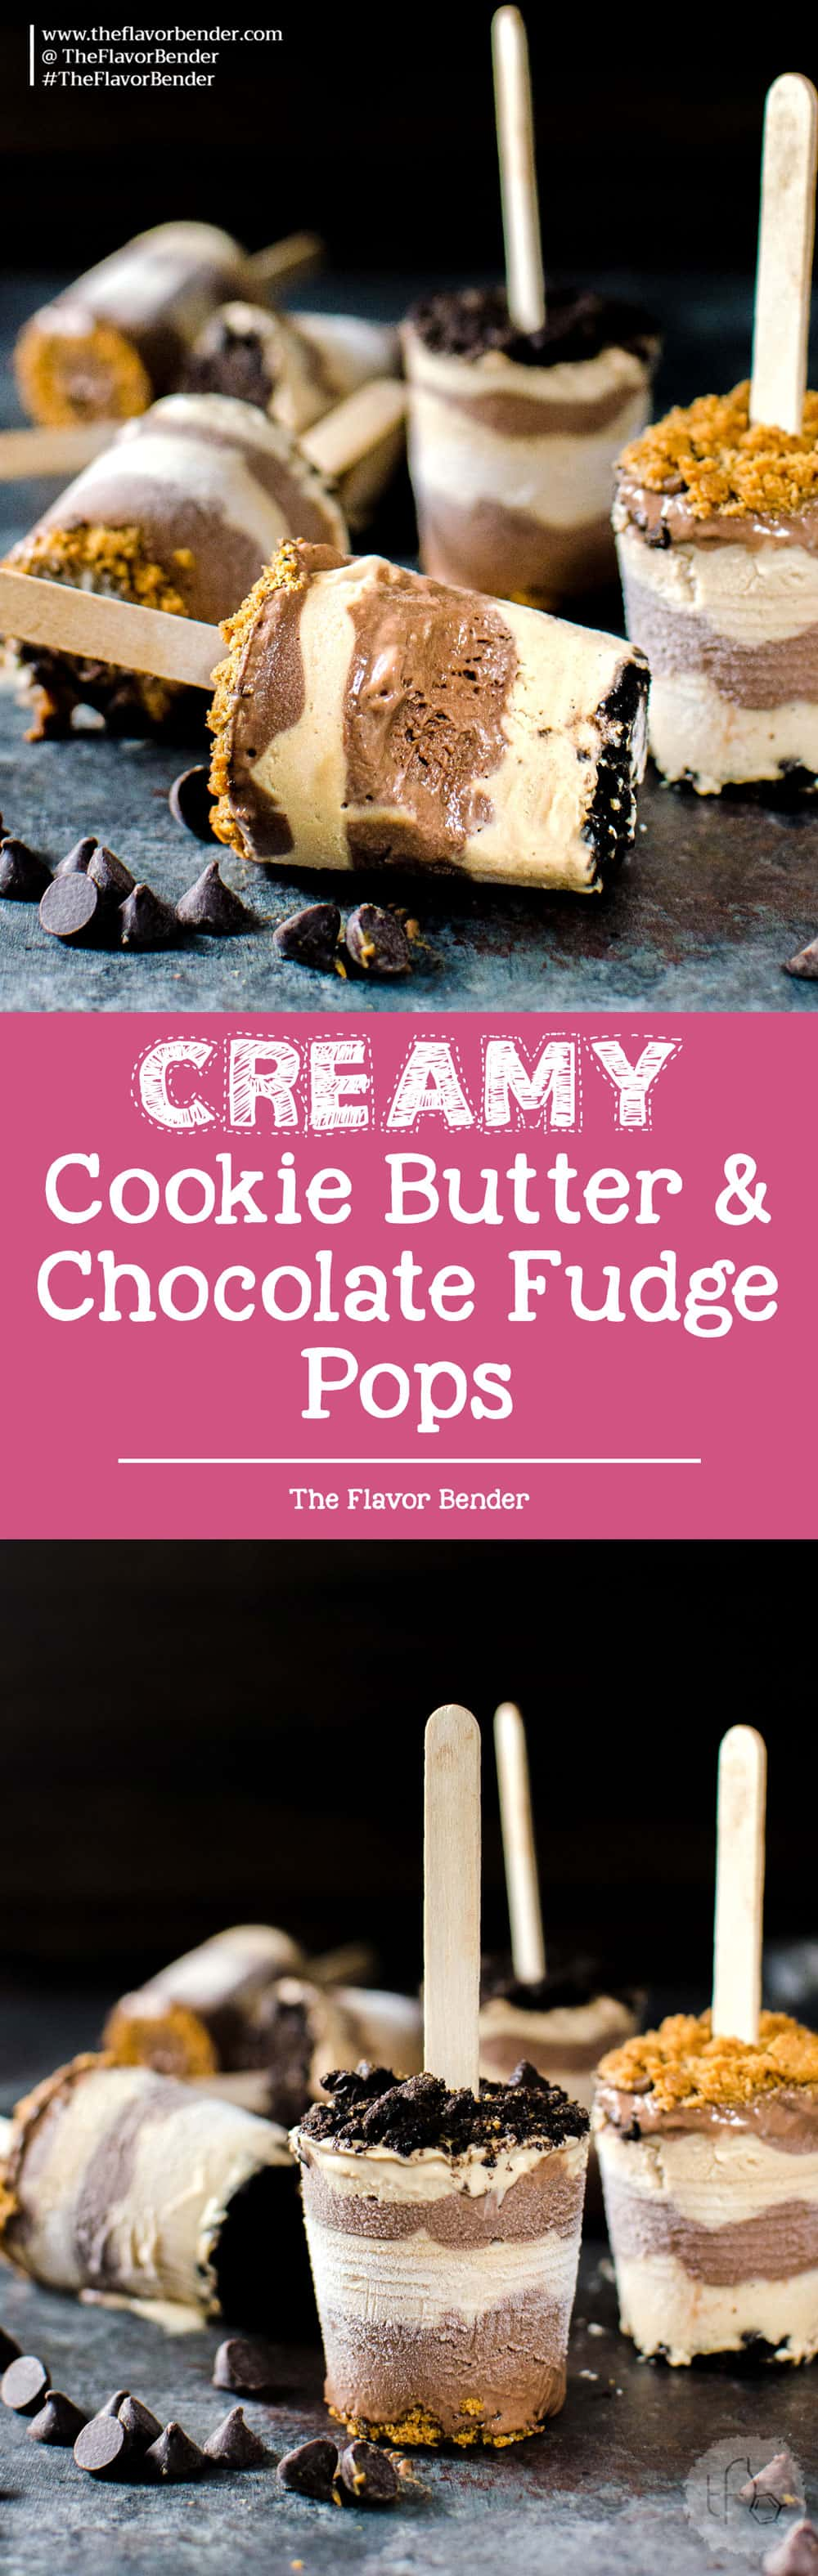 Cookie Butter and Chocolate Fudge Pops - Melt in your mouth creamy, smooth, sweet and salty Cookie Butter and Chocolate Fudge Pops, topped with crushed Oreos and Biscoff cookies! Vegan friendly too.